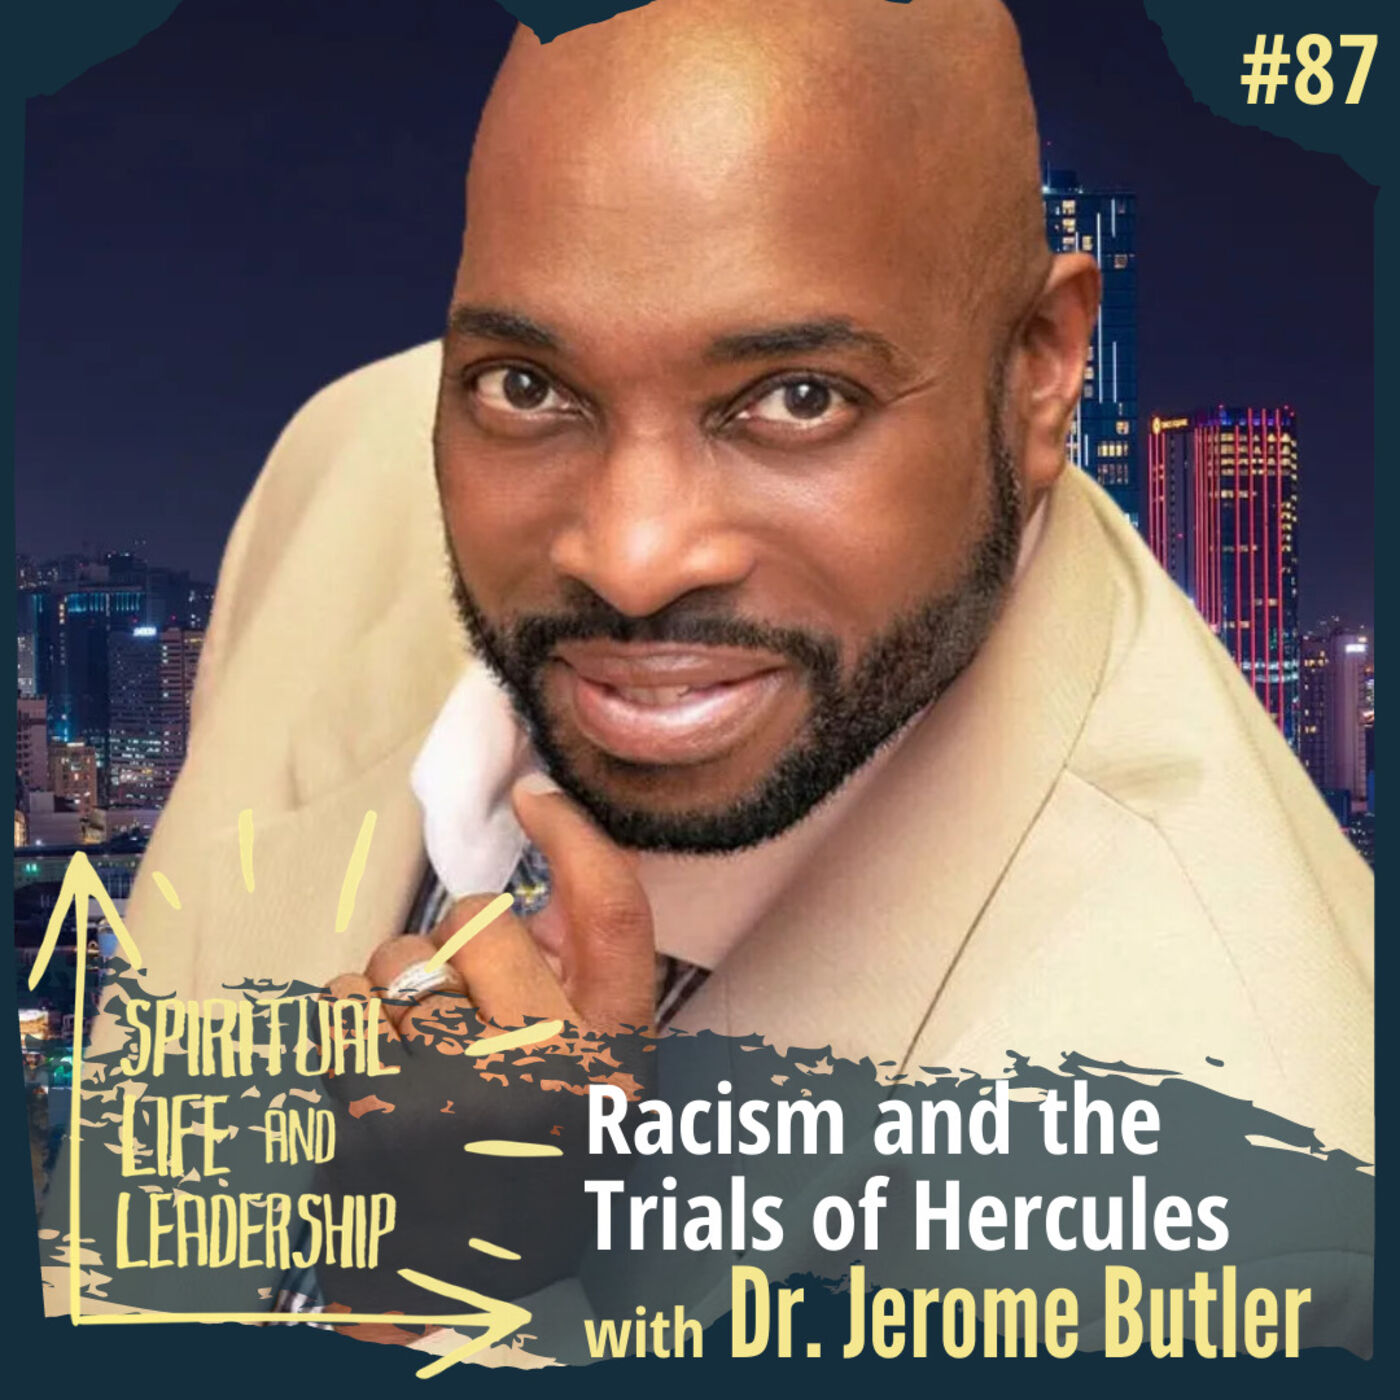 87. Racism and the Trials of Hercules, with Dr. Jerome Butler, host of Moments of Grace